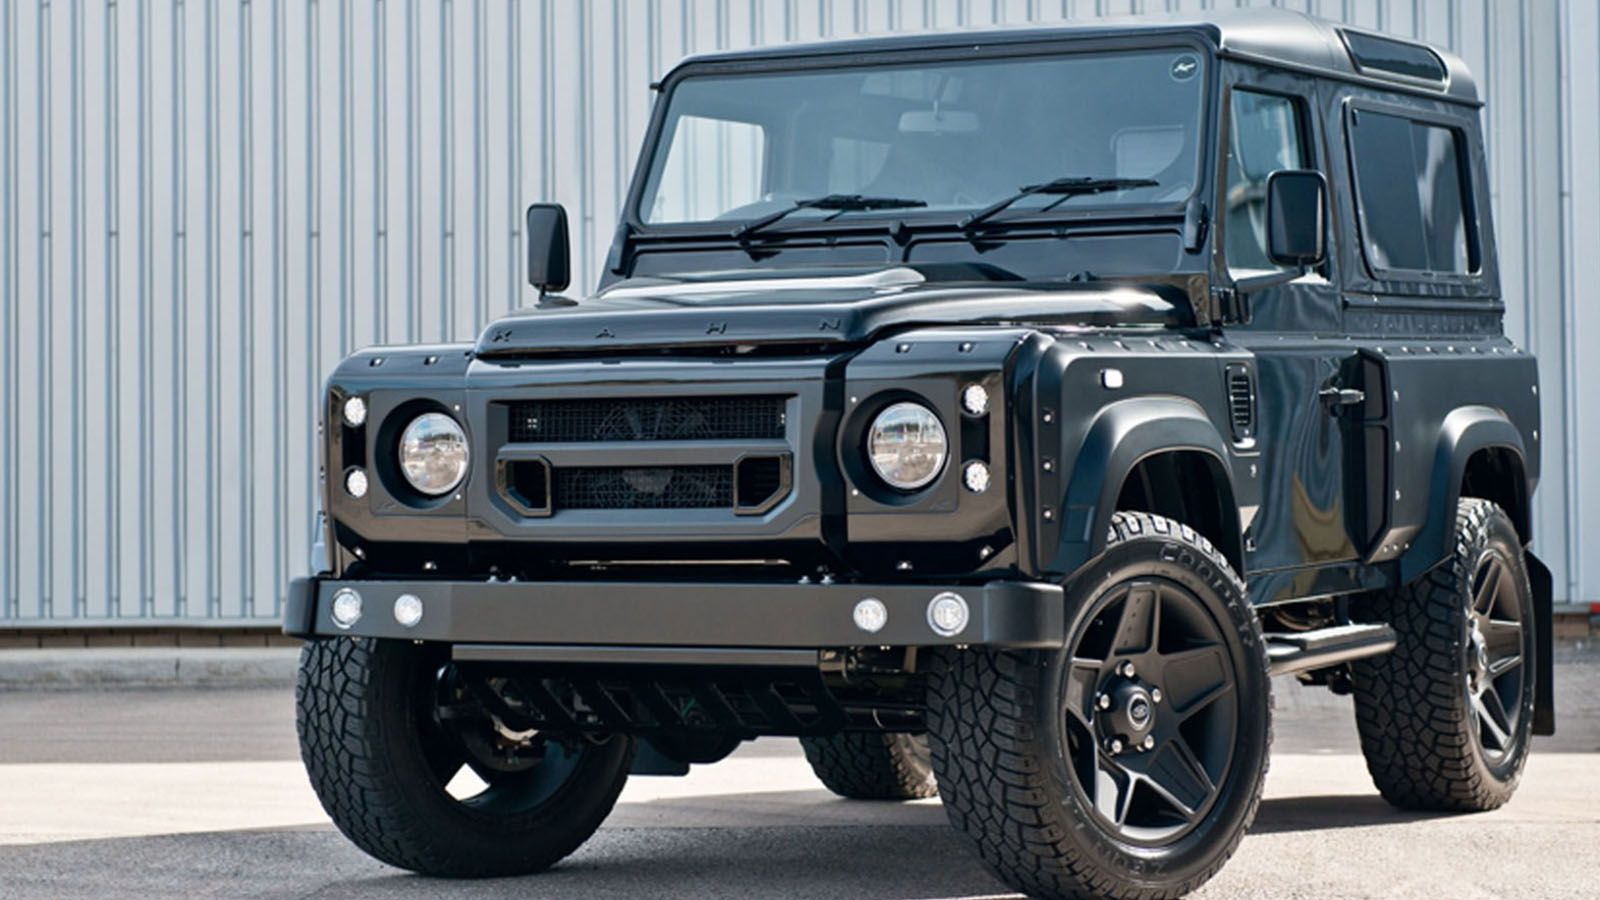 Win A Land Rover Defender 90 Wide Track By Kahn Ticket Price 5 50